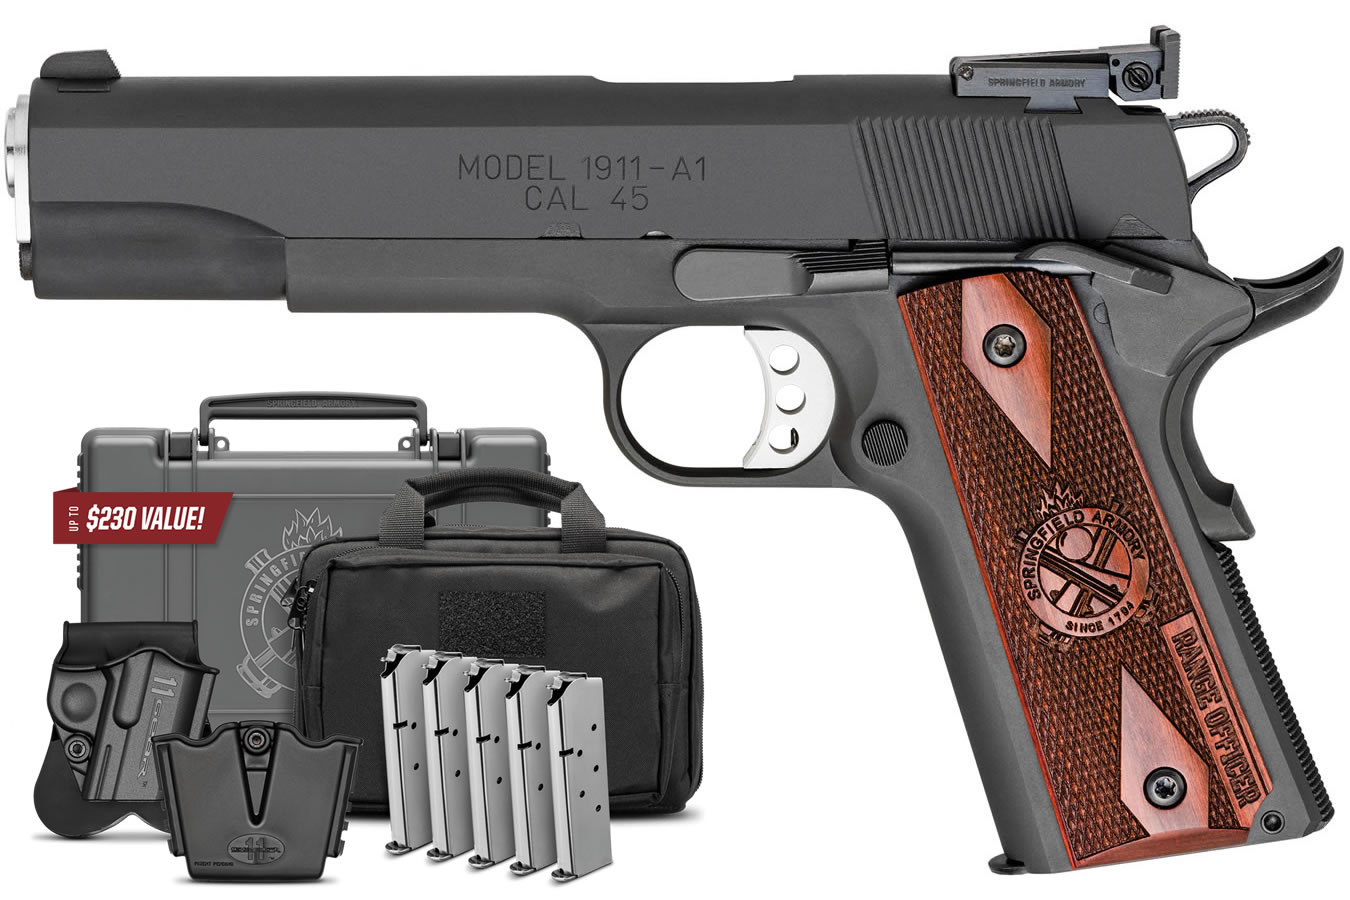 No. 5 Best Selling: SPRINGFIELD 1911 RANGE OFFICER 45 ACP 5 IN BBL CARBON STEEL SLIDE AND FRAME GEAR UP PACKAGE